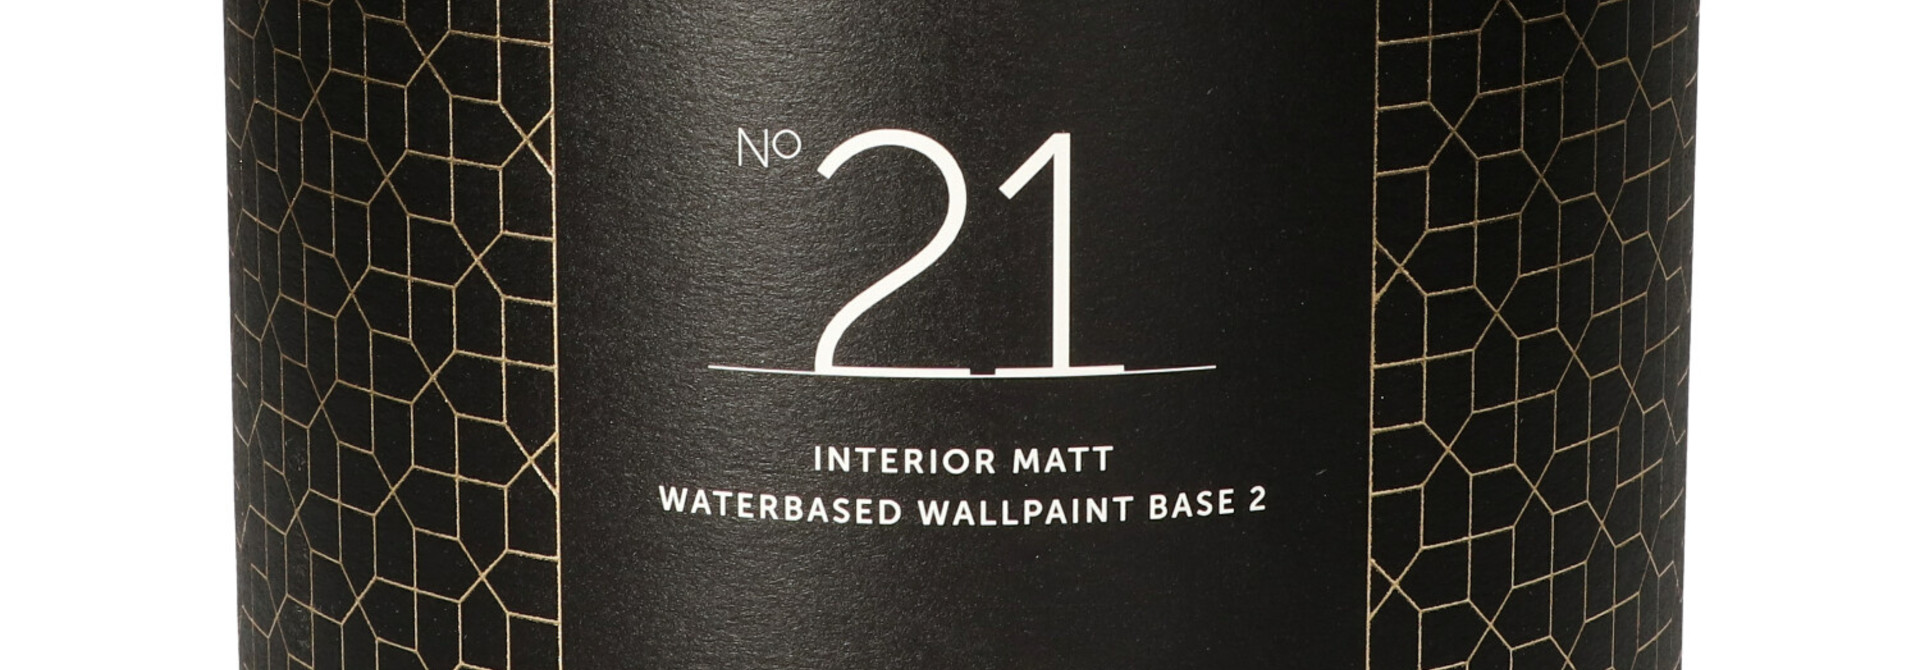 No. 21 INTERIOR MATT WALLPAINT